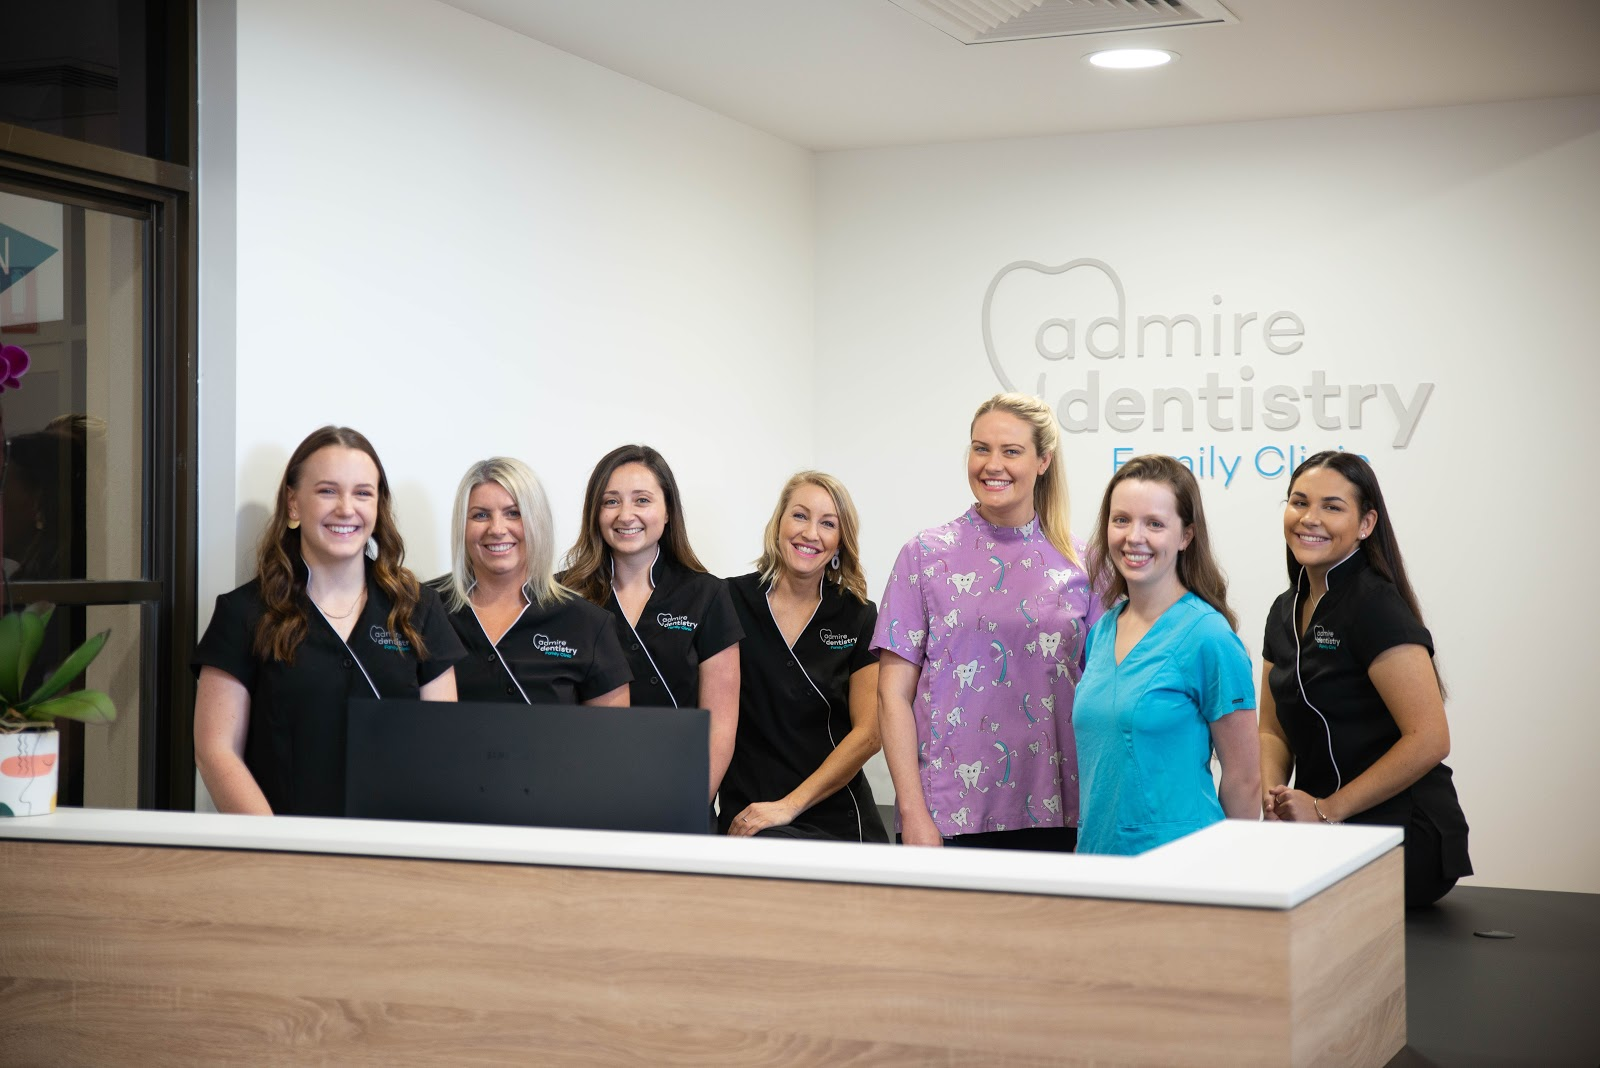 Celebrating 1 Year of Admire Dentistry